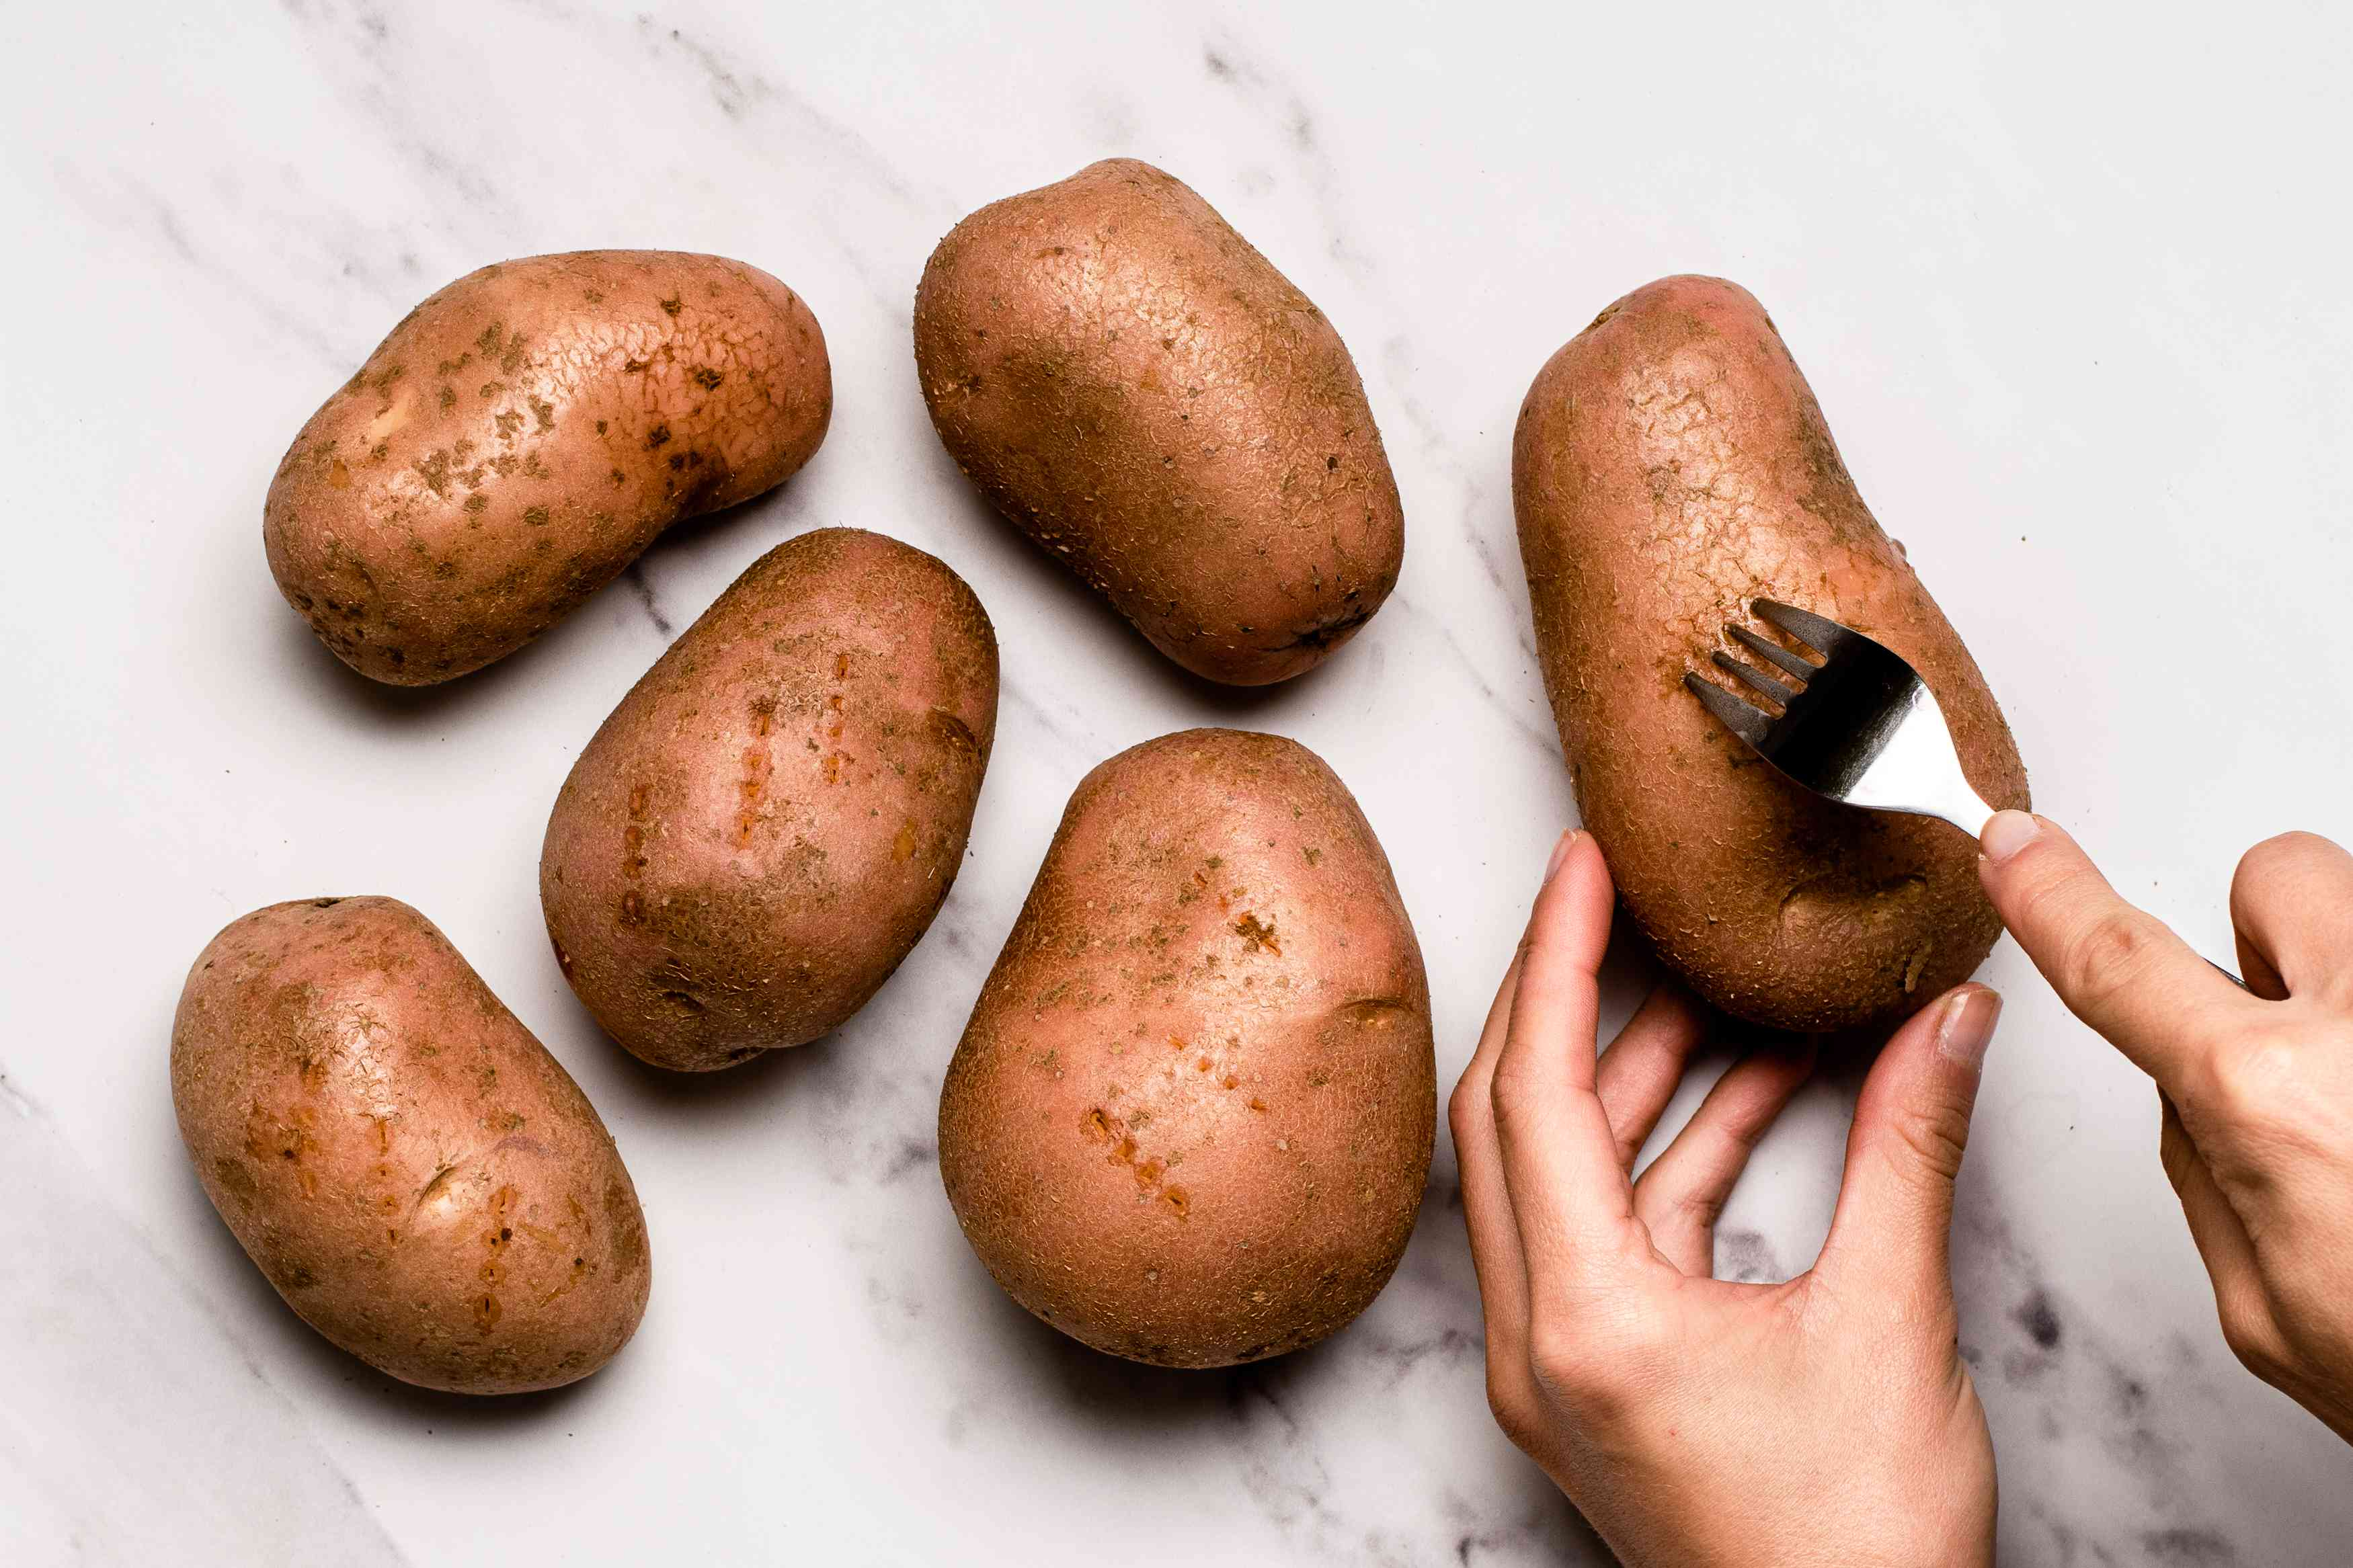 prick each potato deeply with a fork